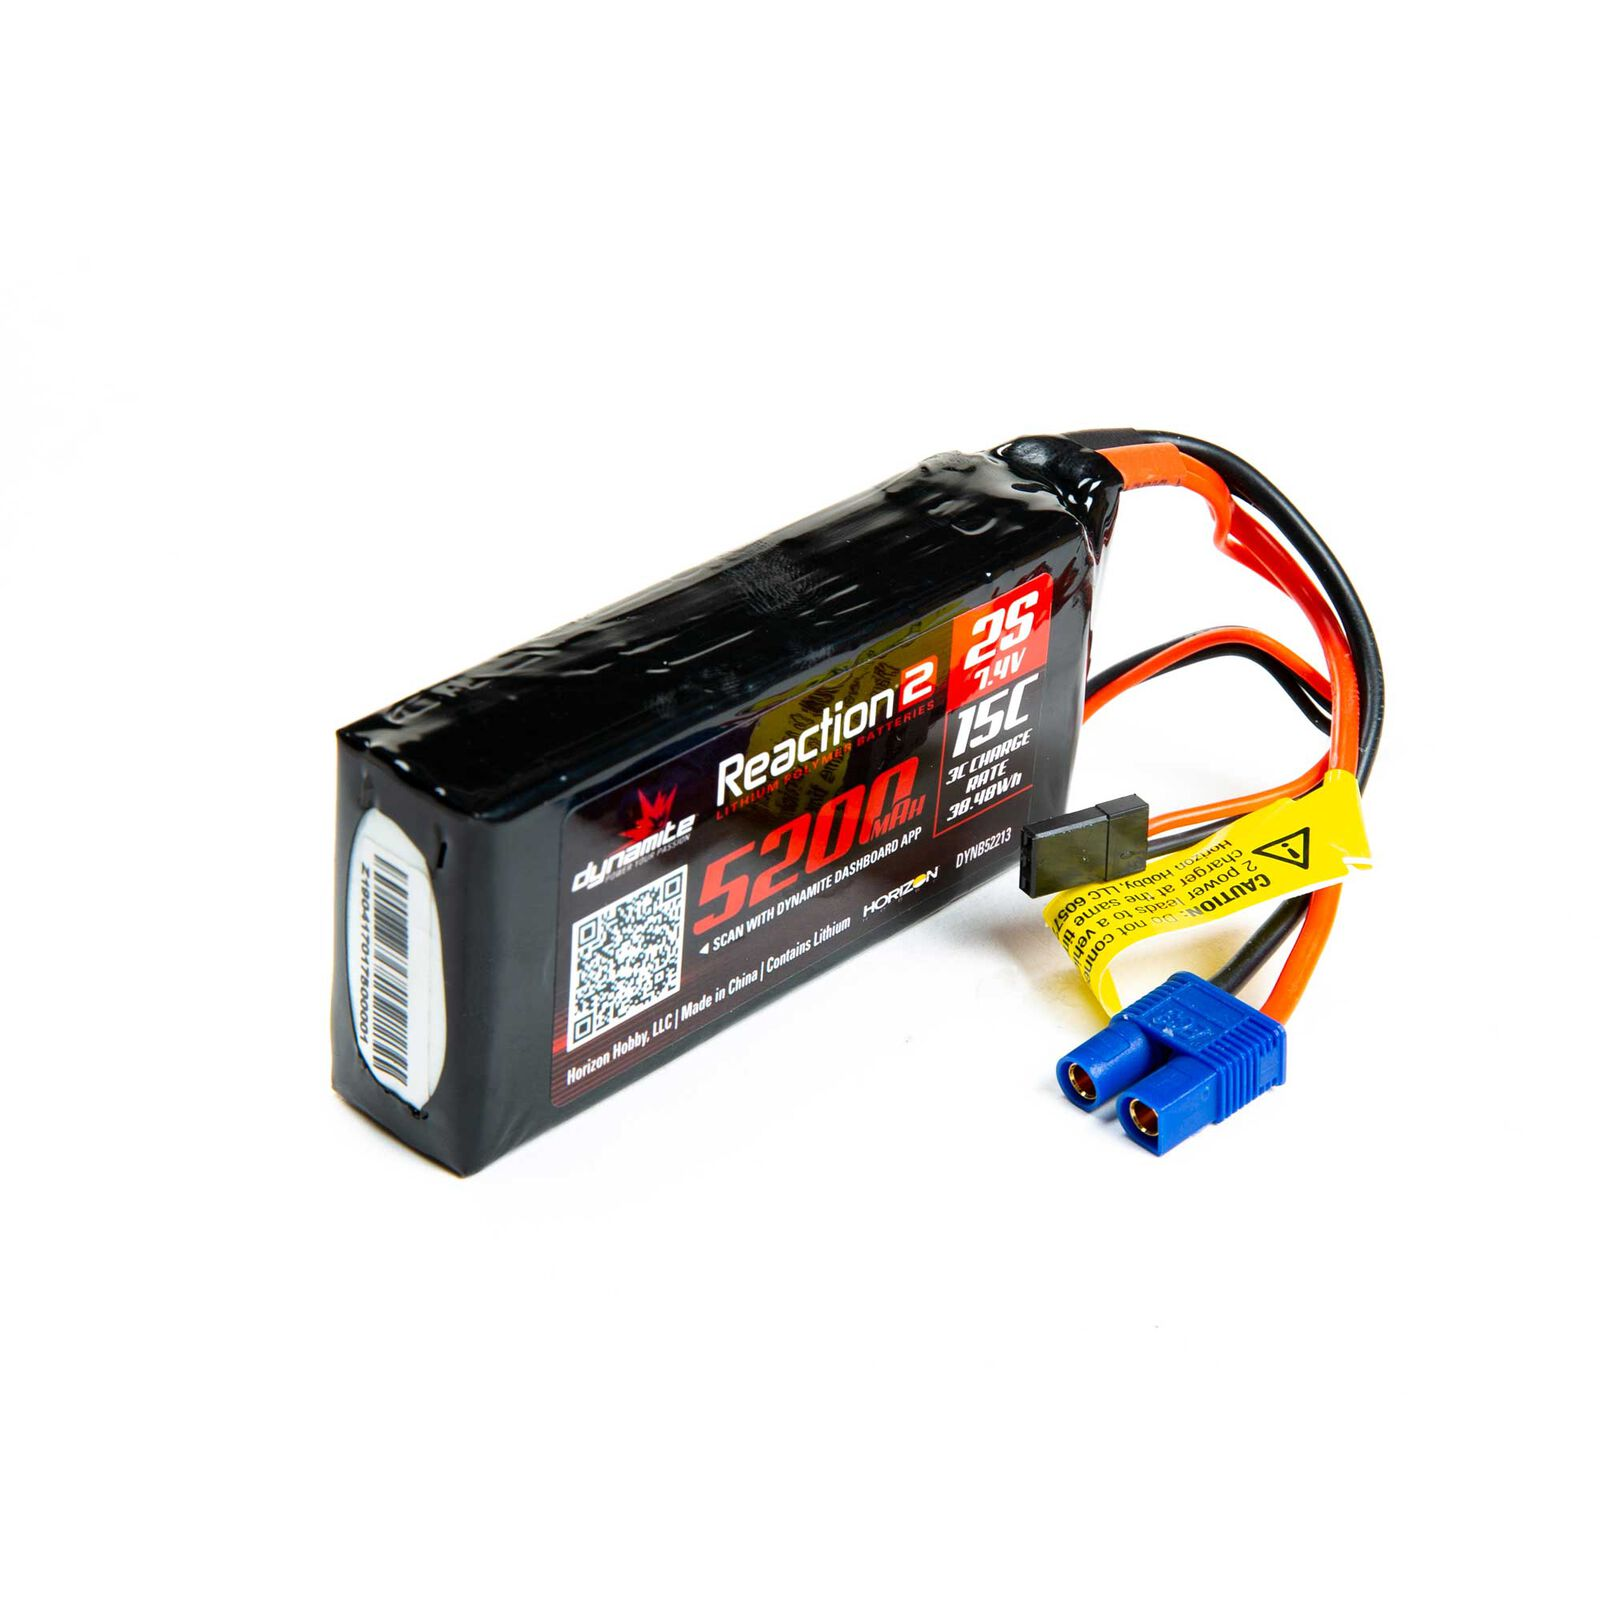 7.4V 5200mAh 2S 15C Reaction 2.0 LiPo Battery: Universal Receiver